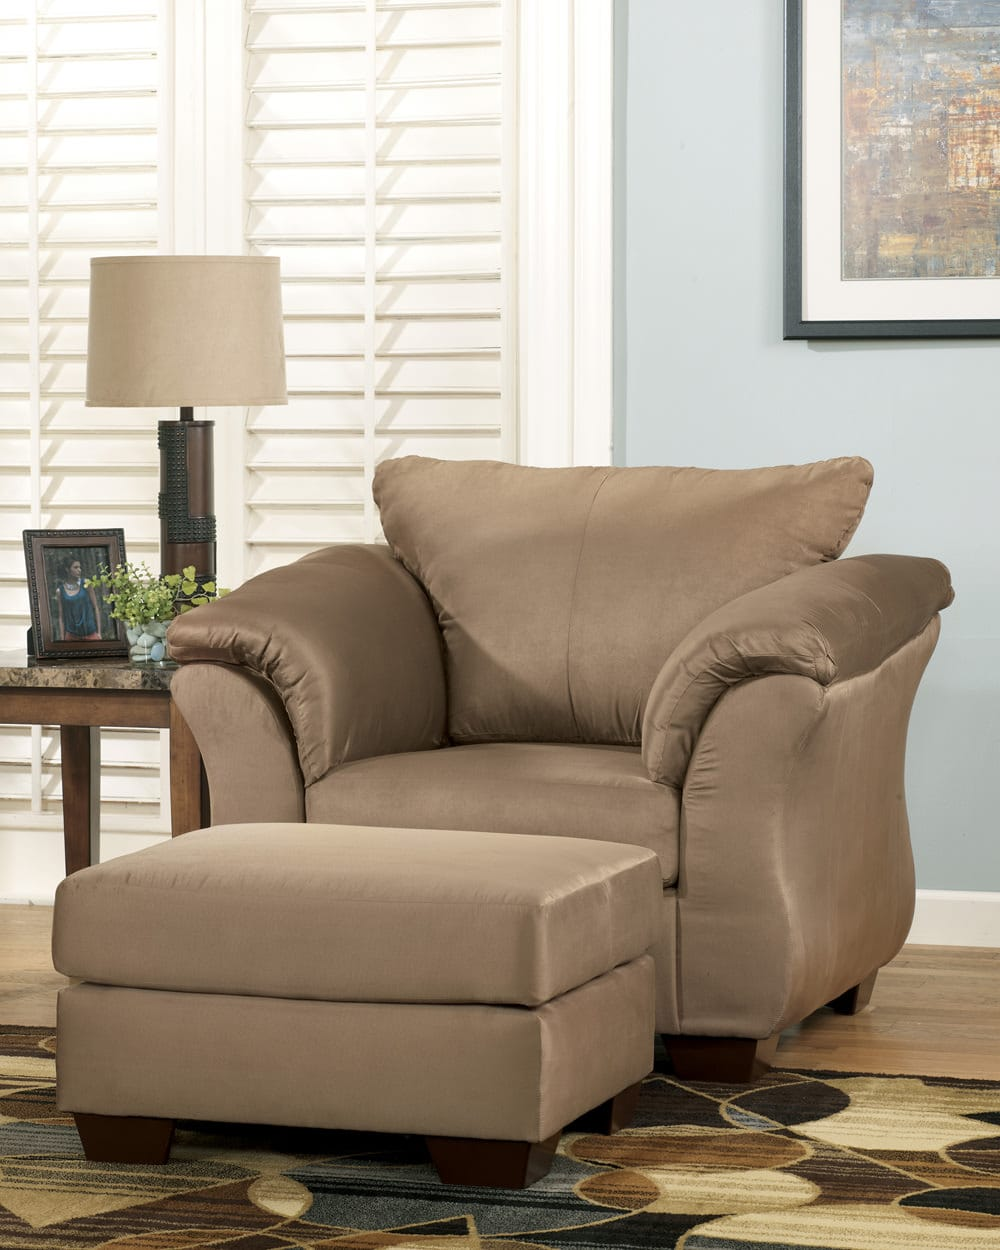 Ashley Chairs Darcy Mocha Chair Signature Design By Ashley Furniture